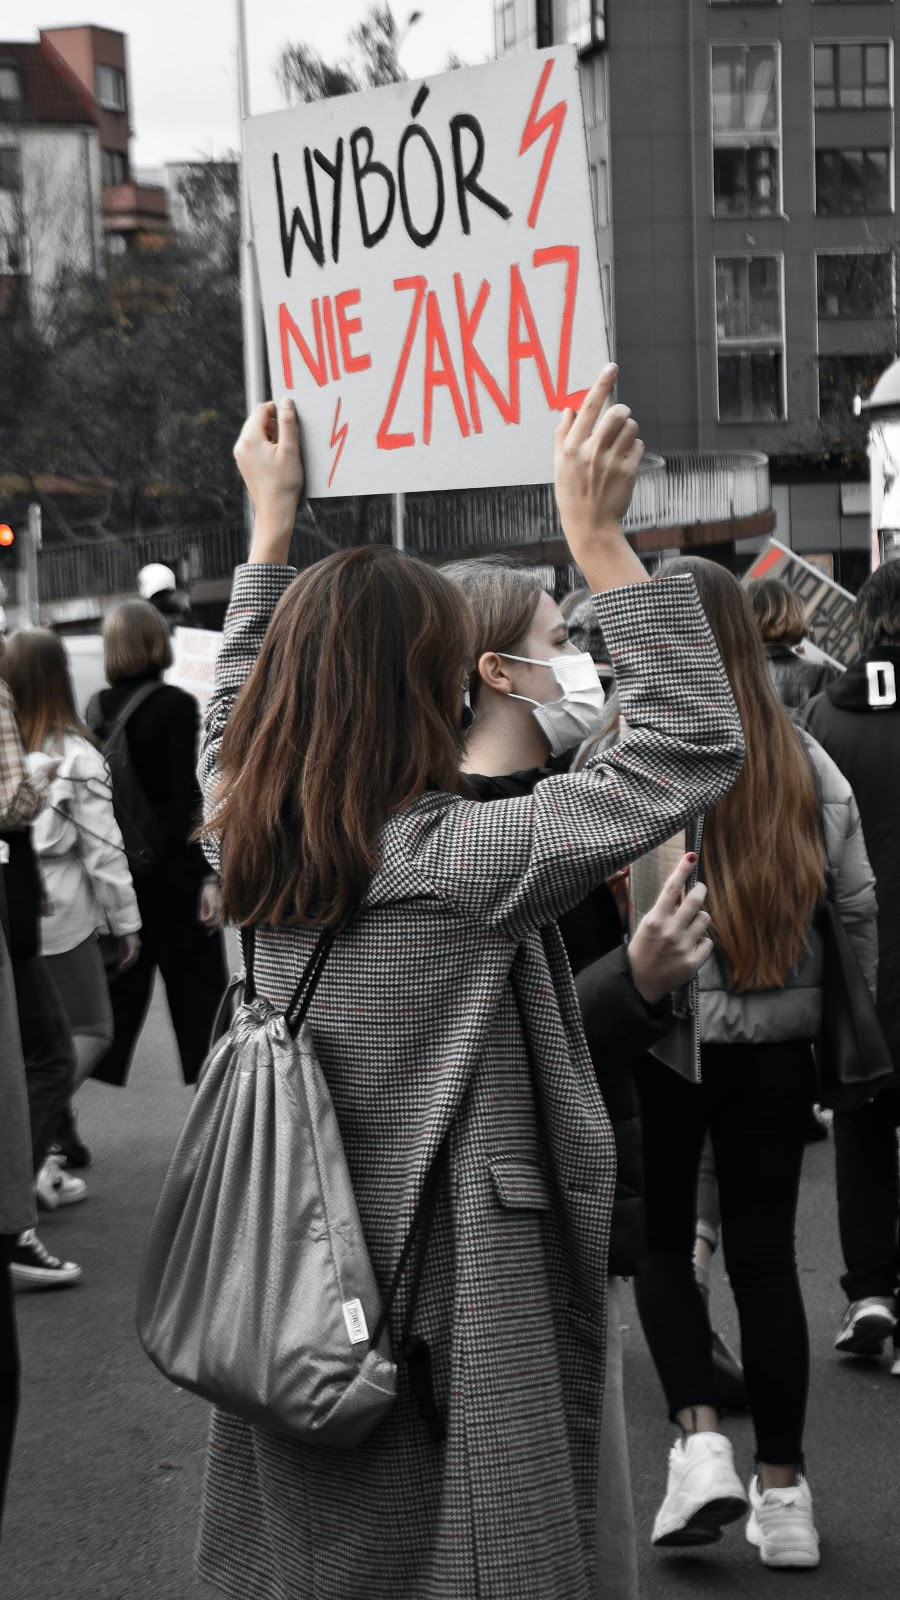 Woman holding a sign at a protest, wearing a dark jacket.